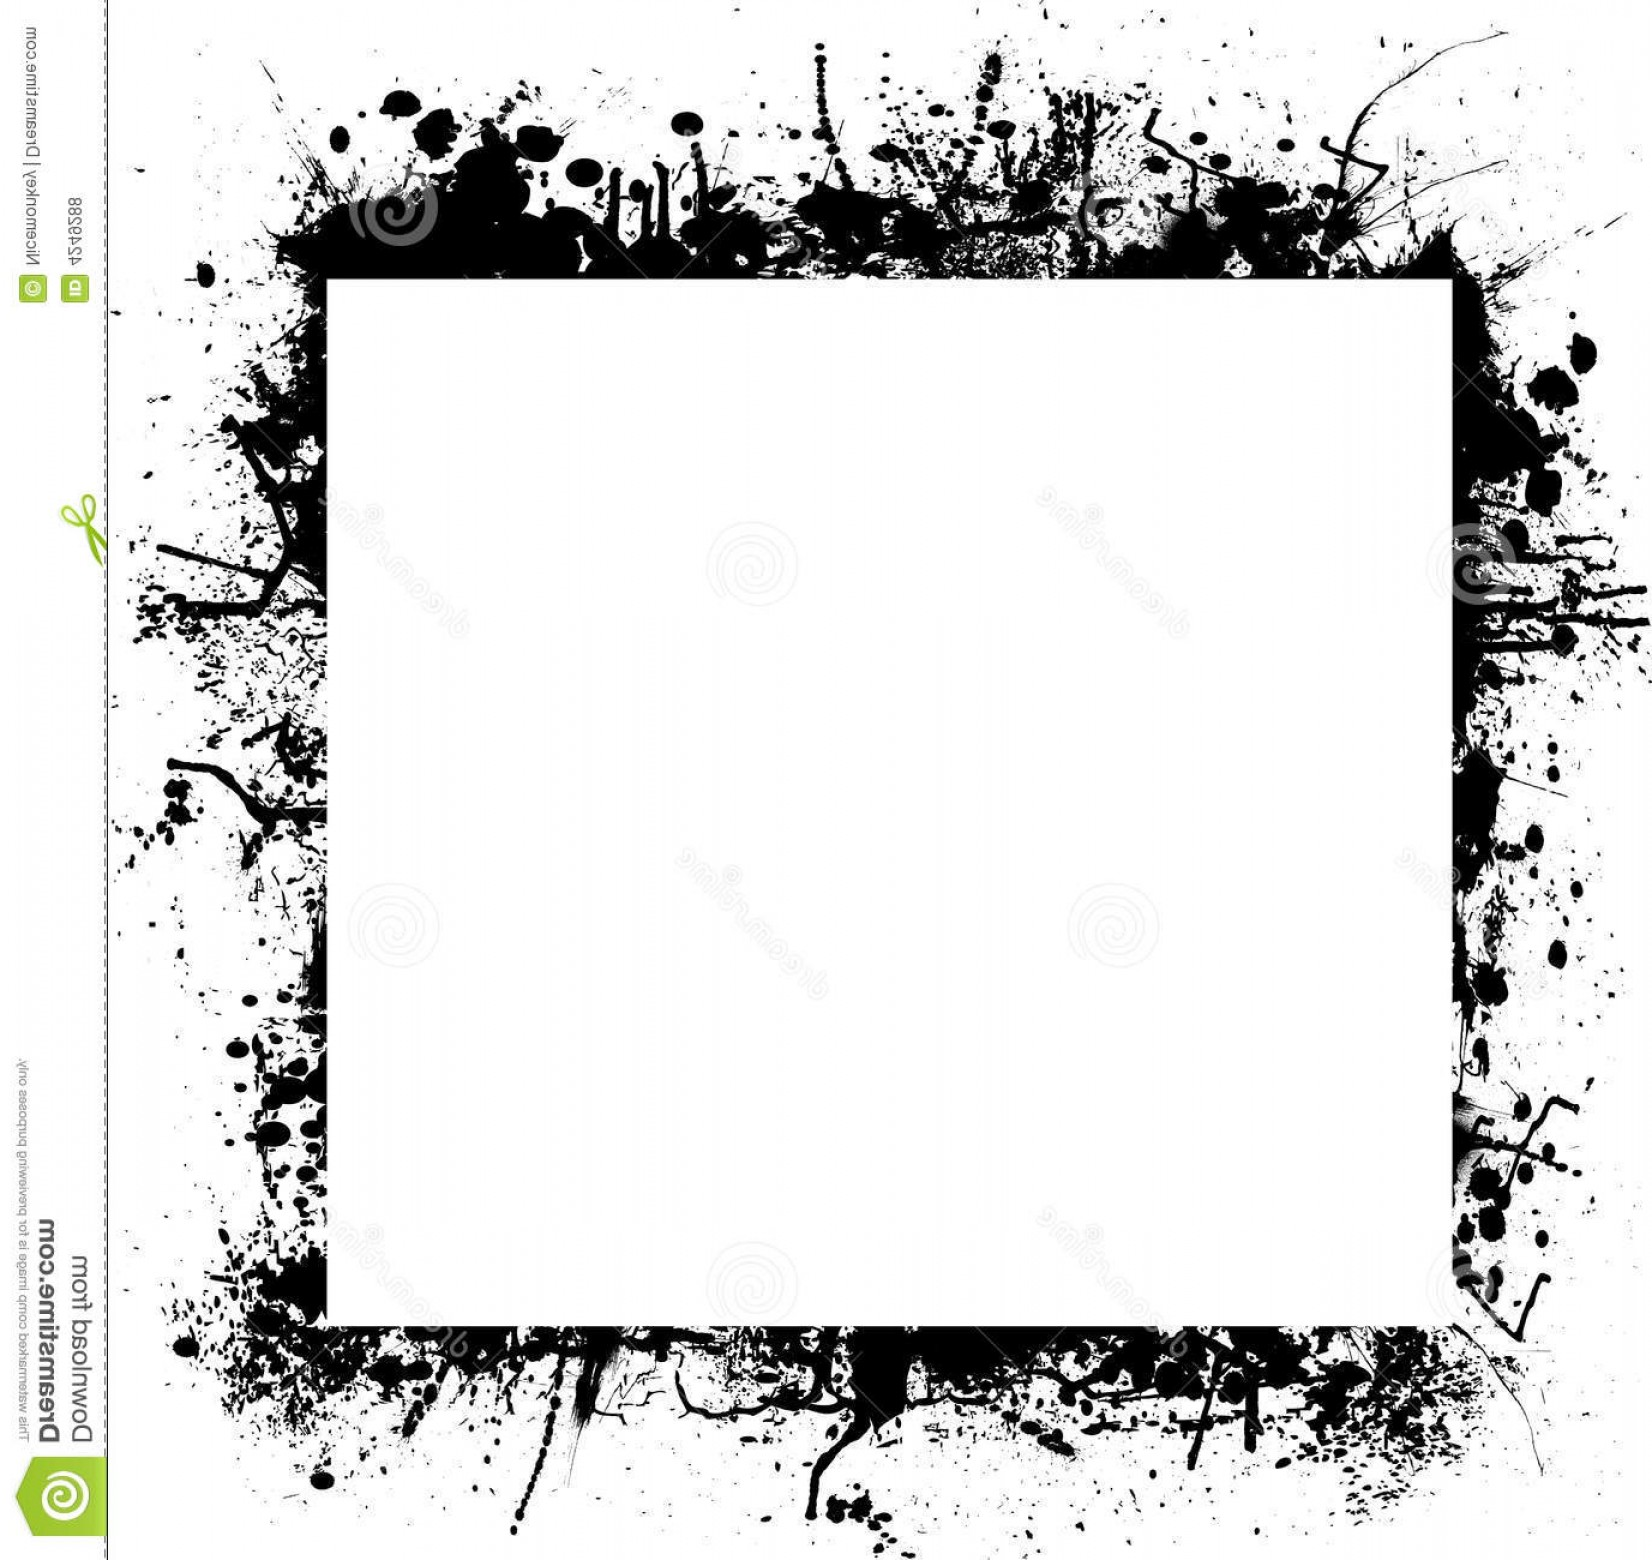 Square Black Vector Border Frame: Royalty Free Stock Photos Ink Splat Border Square Image